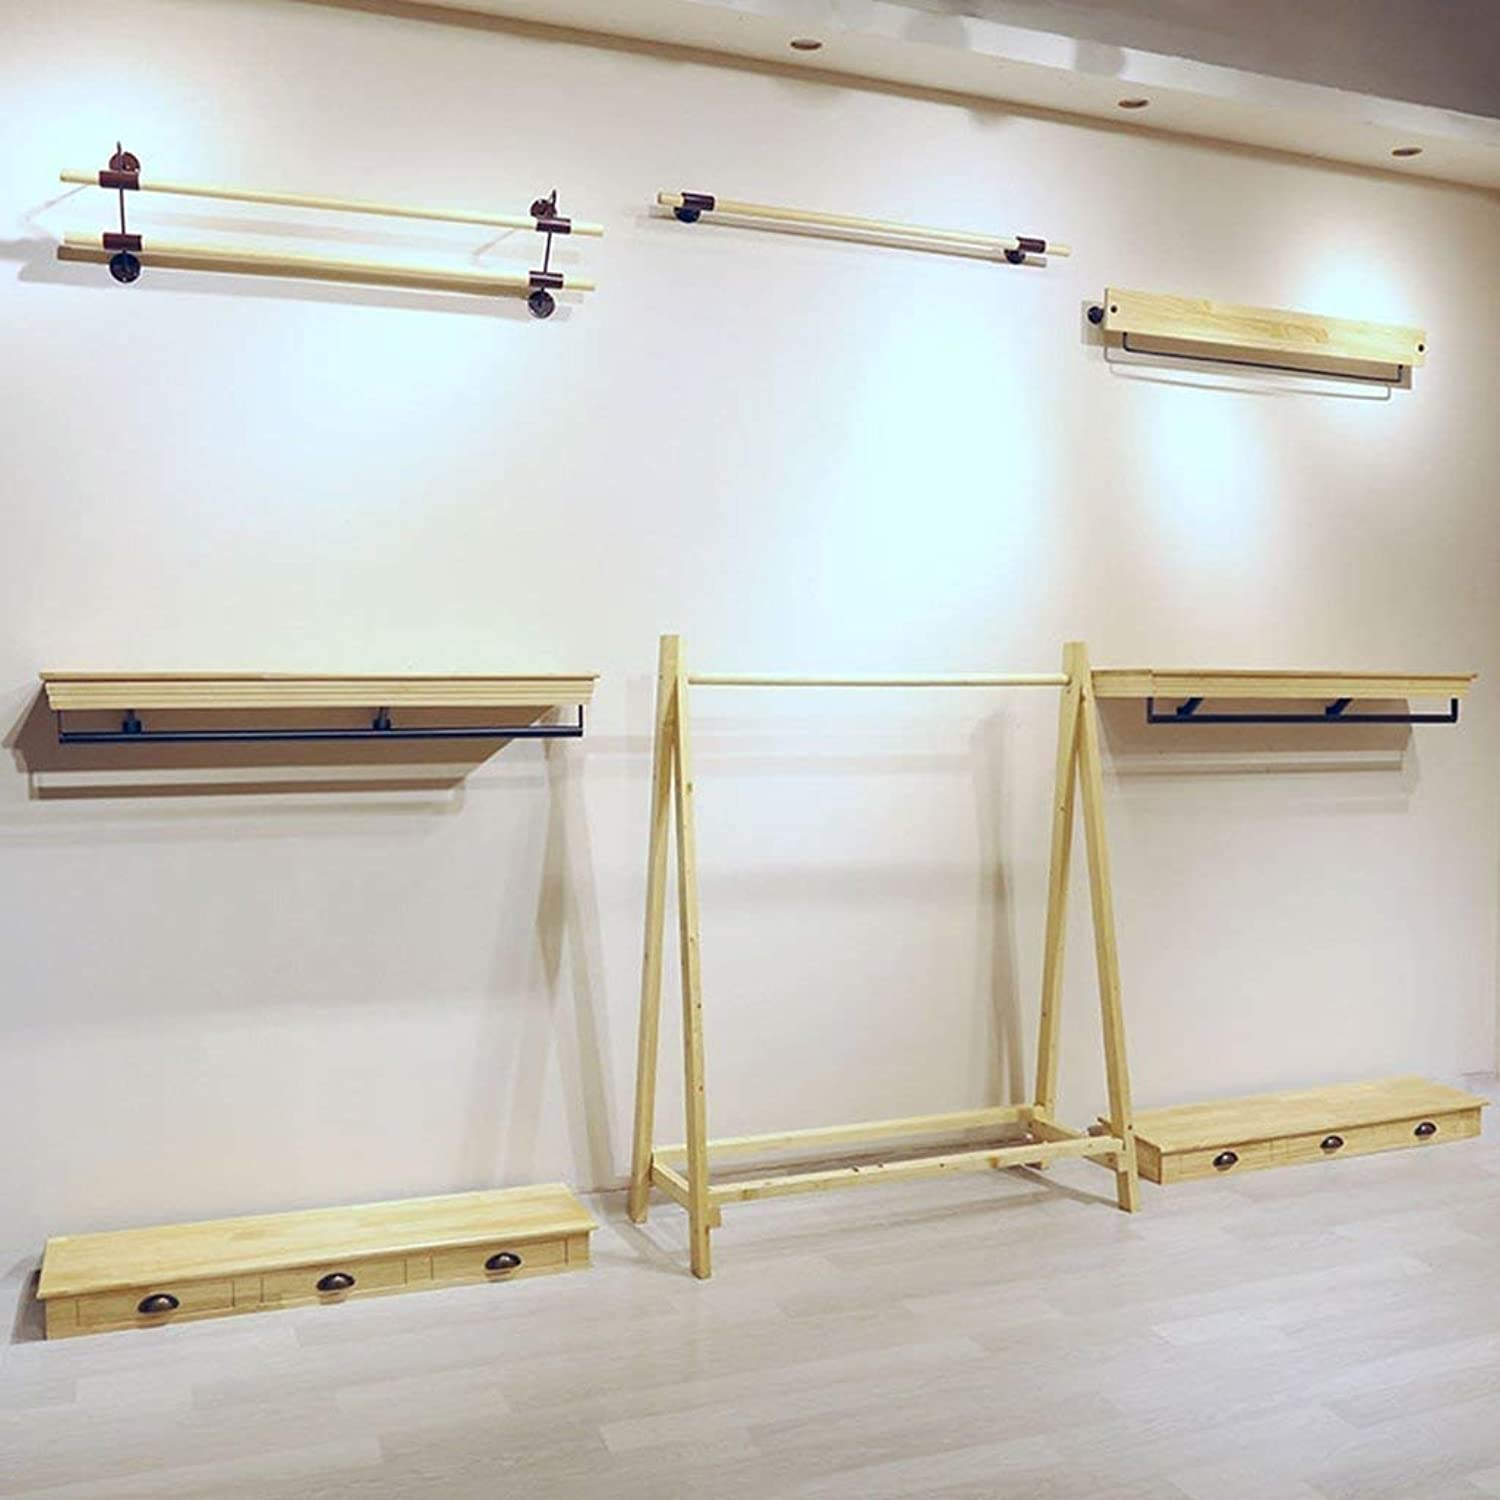 Shiyanghang Wooden Household Hangers, Wall Hangers,Wood color Iron Feet Single Pole Positive Hang Clothing Store Clothes Rack Display Stand Wall Pylons Wall Shelves Rack,Wall Door Back Coat Rack